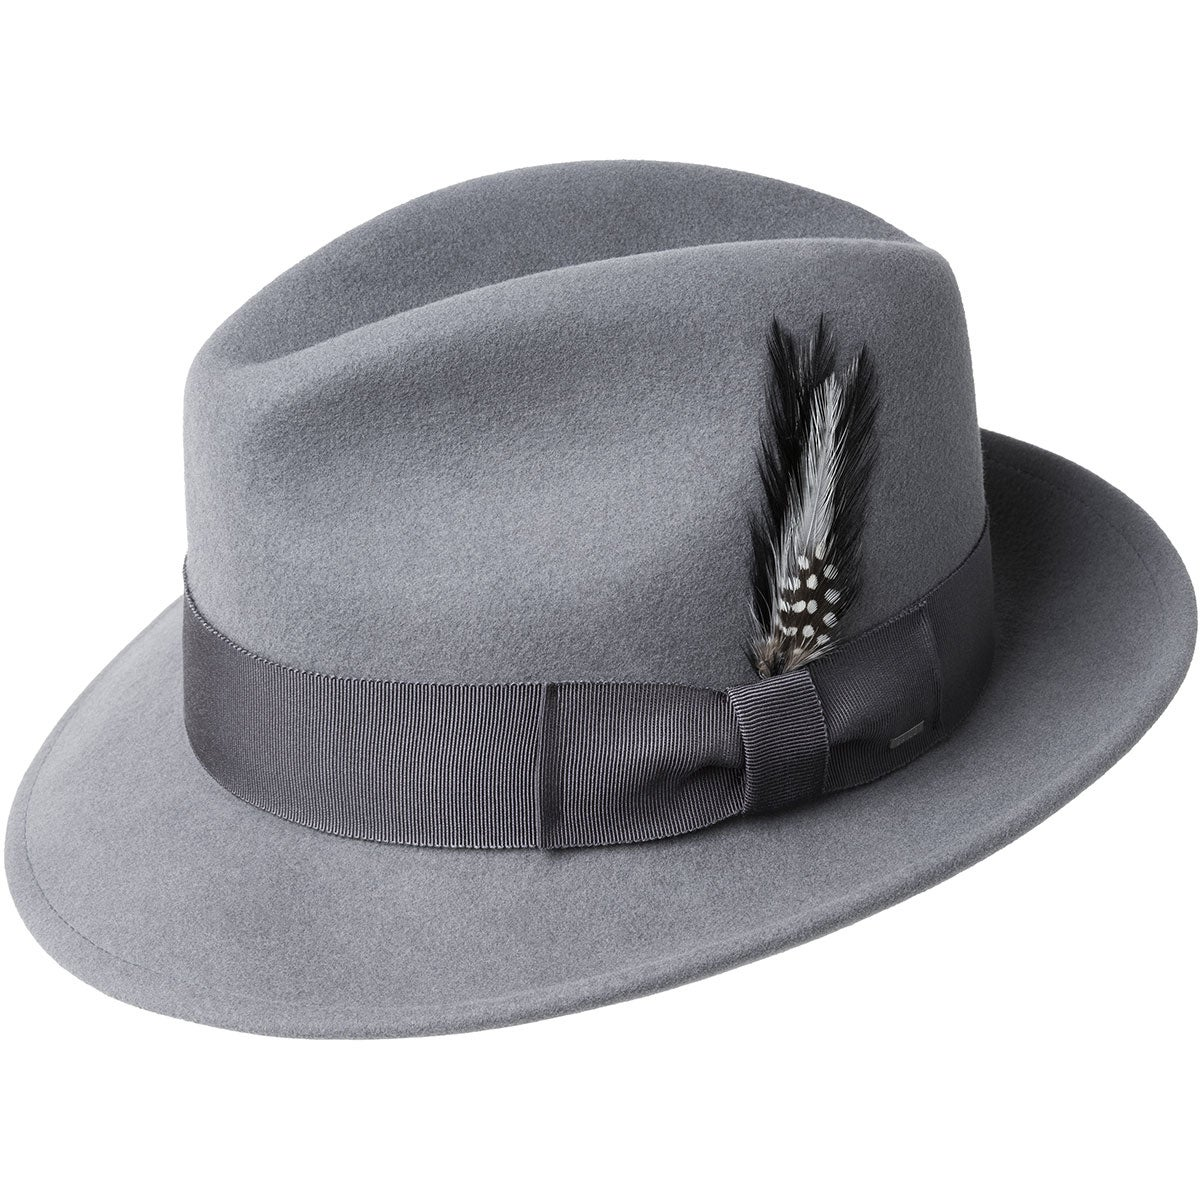 1930s Style Mens Hats and Caps Blixen Limited Edition Fedora - AshS $73.50 AT vintagedancer.com